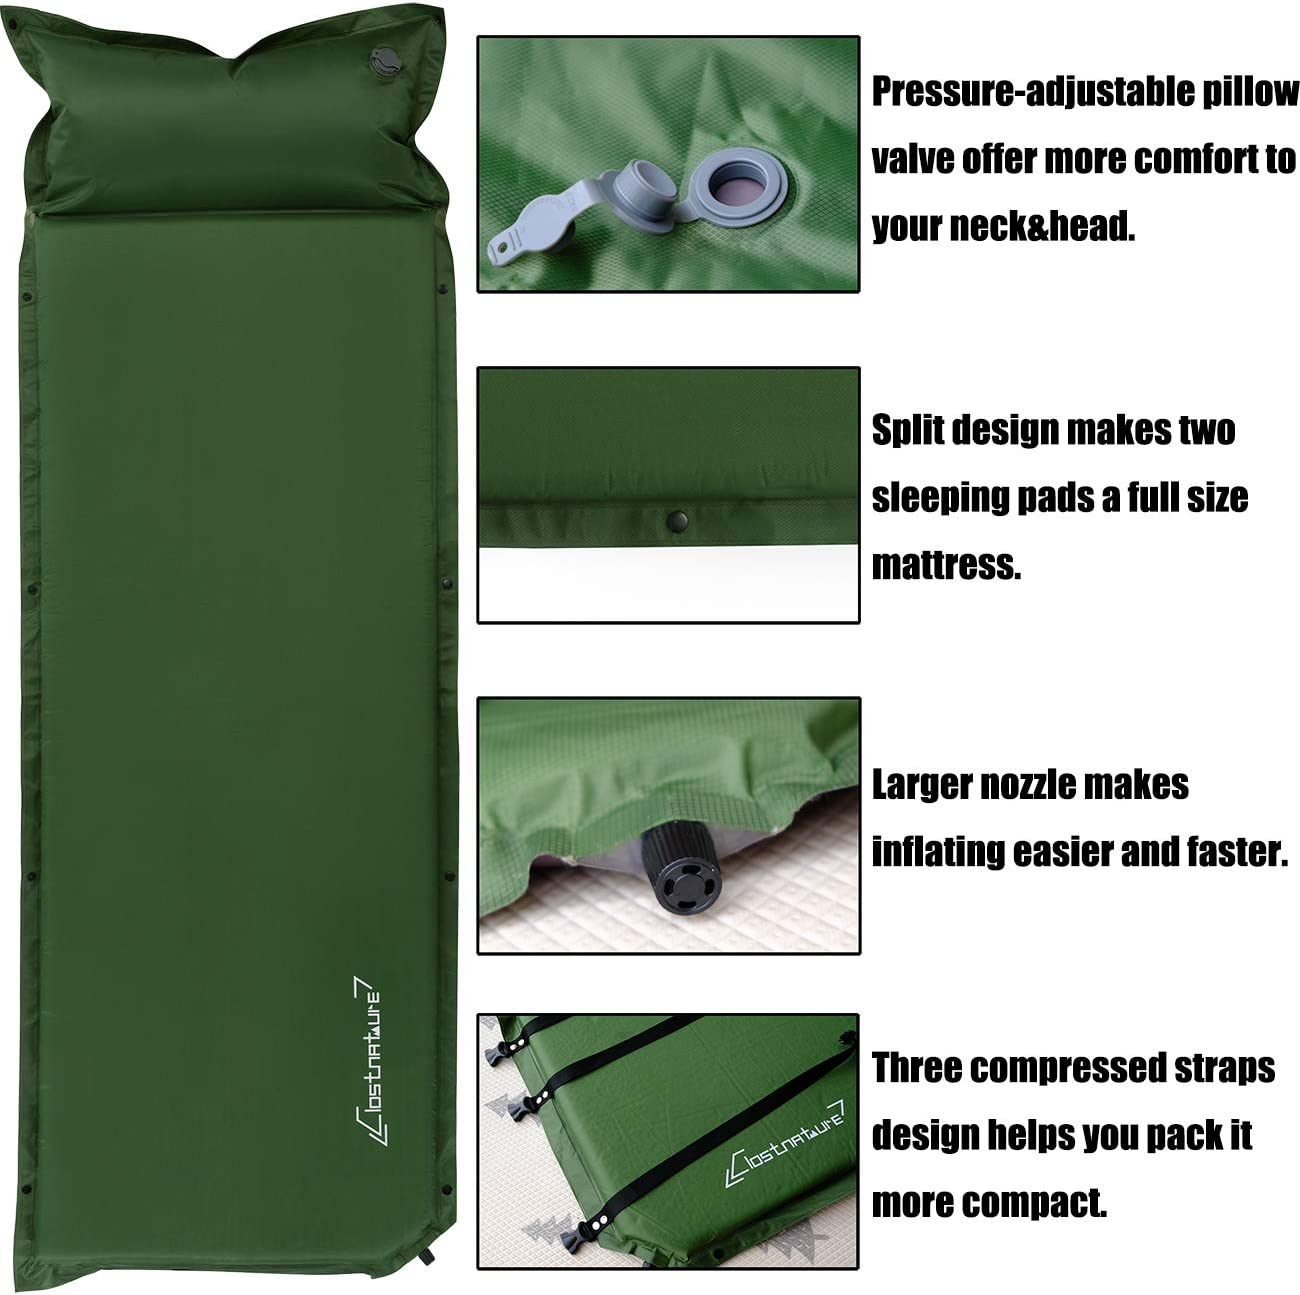 Insulated Foam Sleeping Mat for Backpacking 1.5 Inch Camping Pad Lightweight Inflatable Camping Mattress Pad Tent Hammock Self Inflating Sleeping Pad for Camping